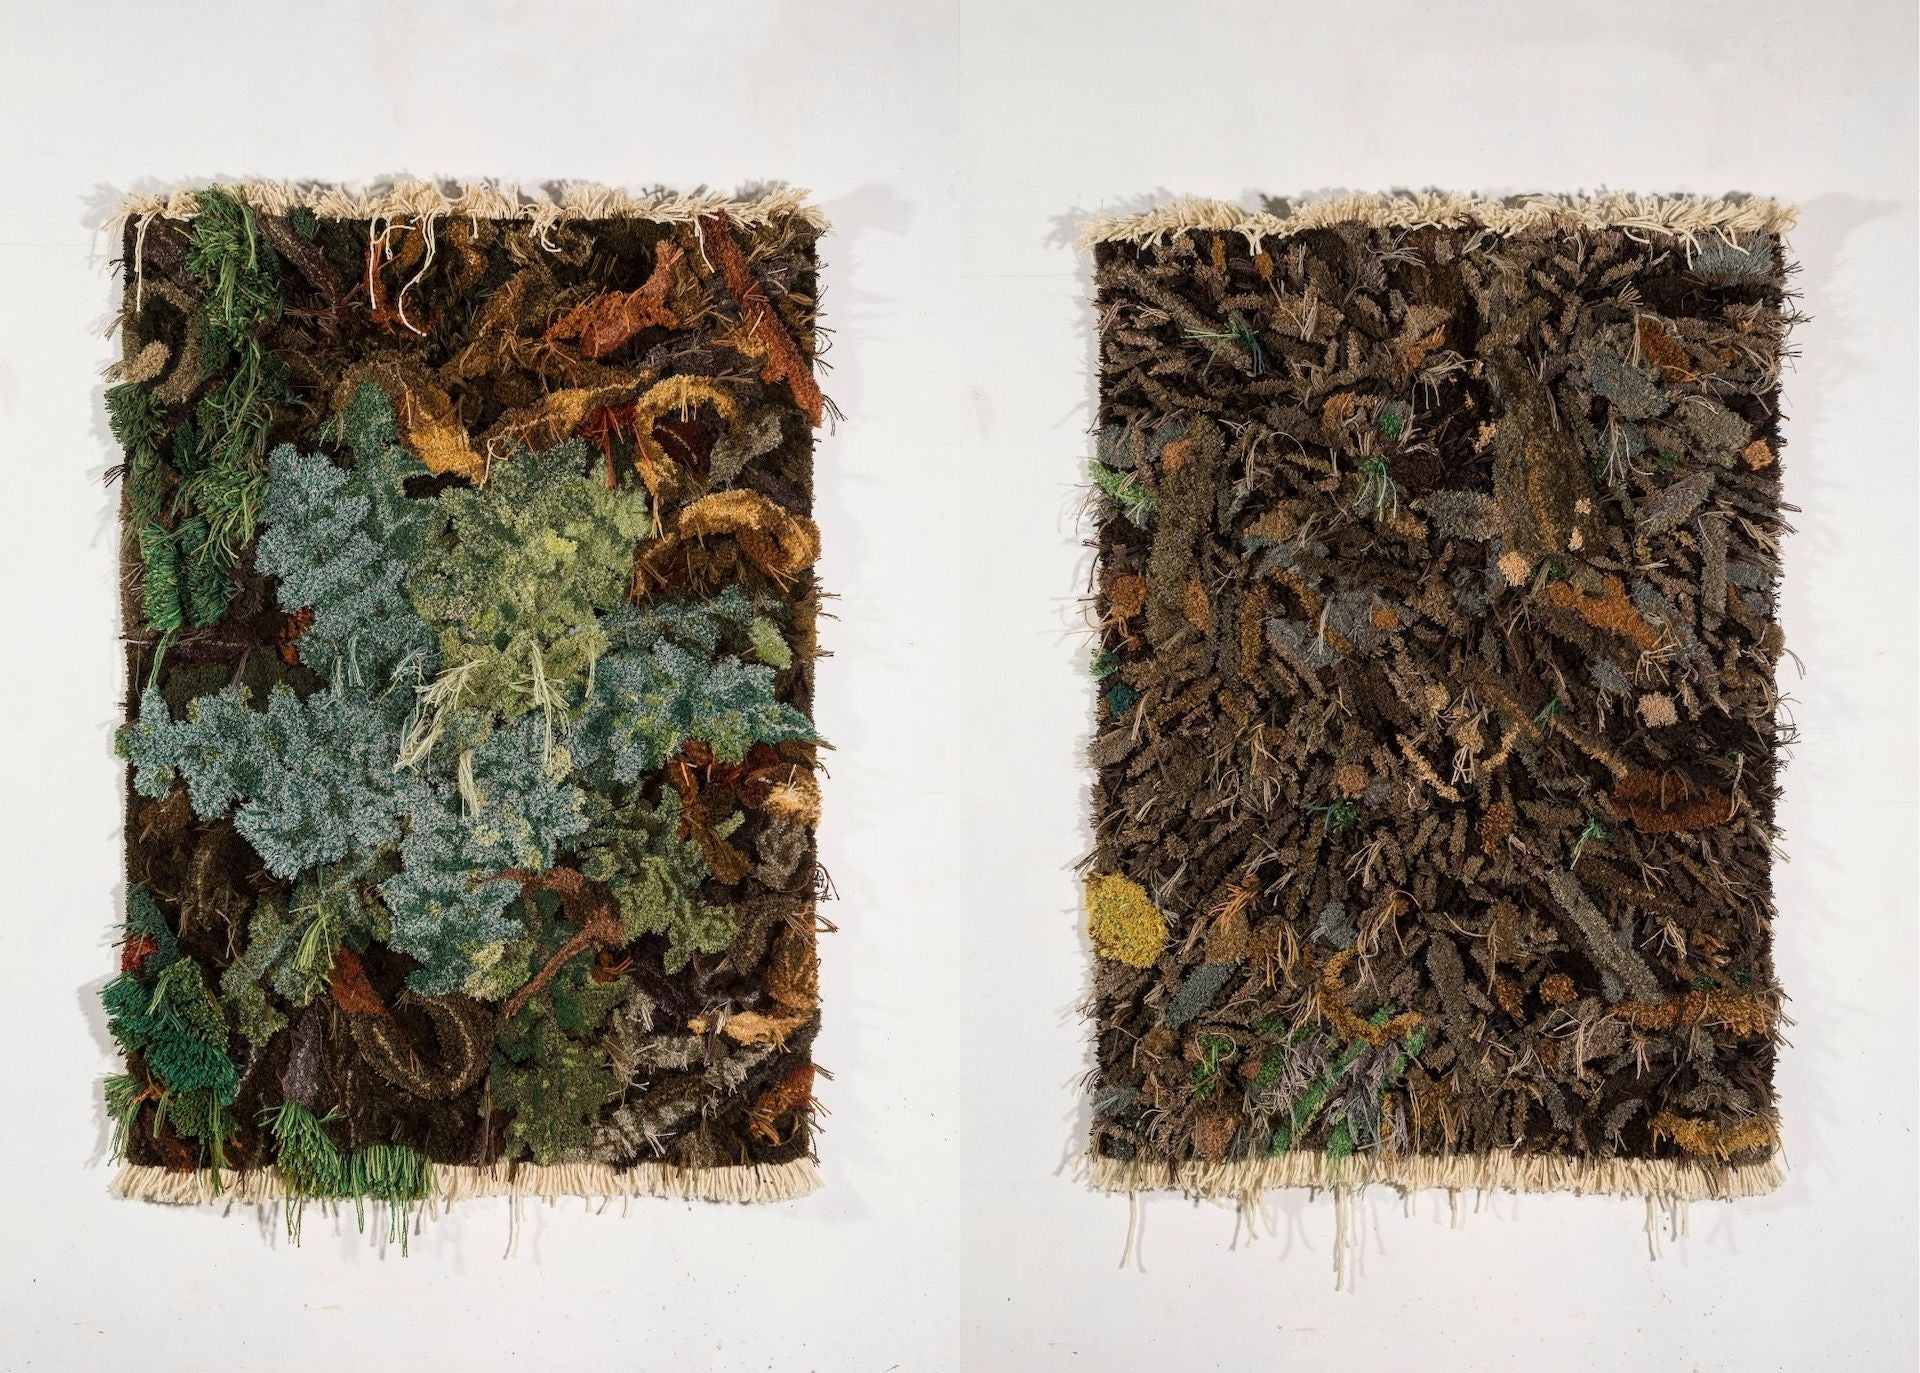 Thistle (left) and High Waters Retreat (right) by Alexandra Kehayoglou, two of her most recent works inspired by her time in the Paraná wetlands. Photos courtesy of Alexandra Kehayoglou